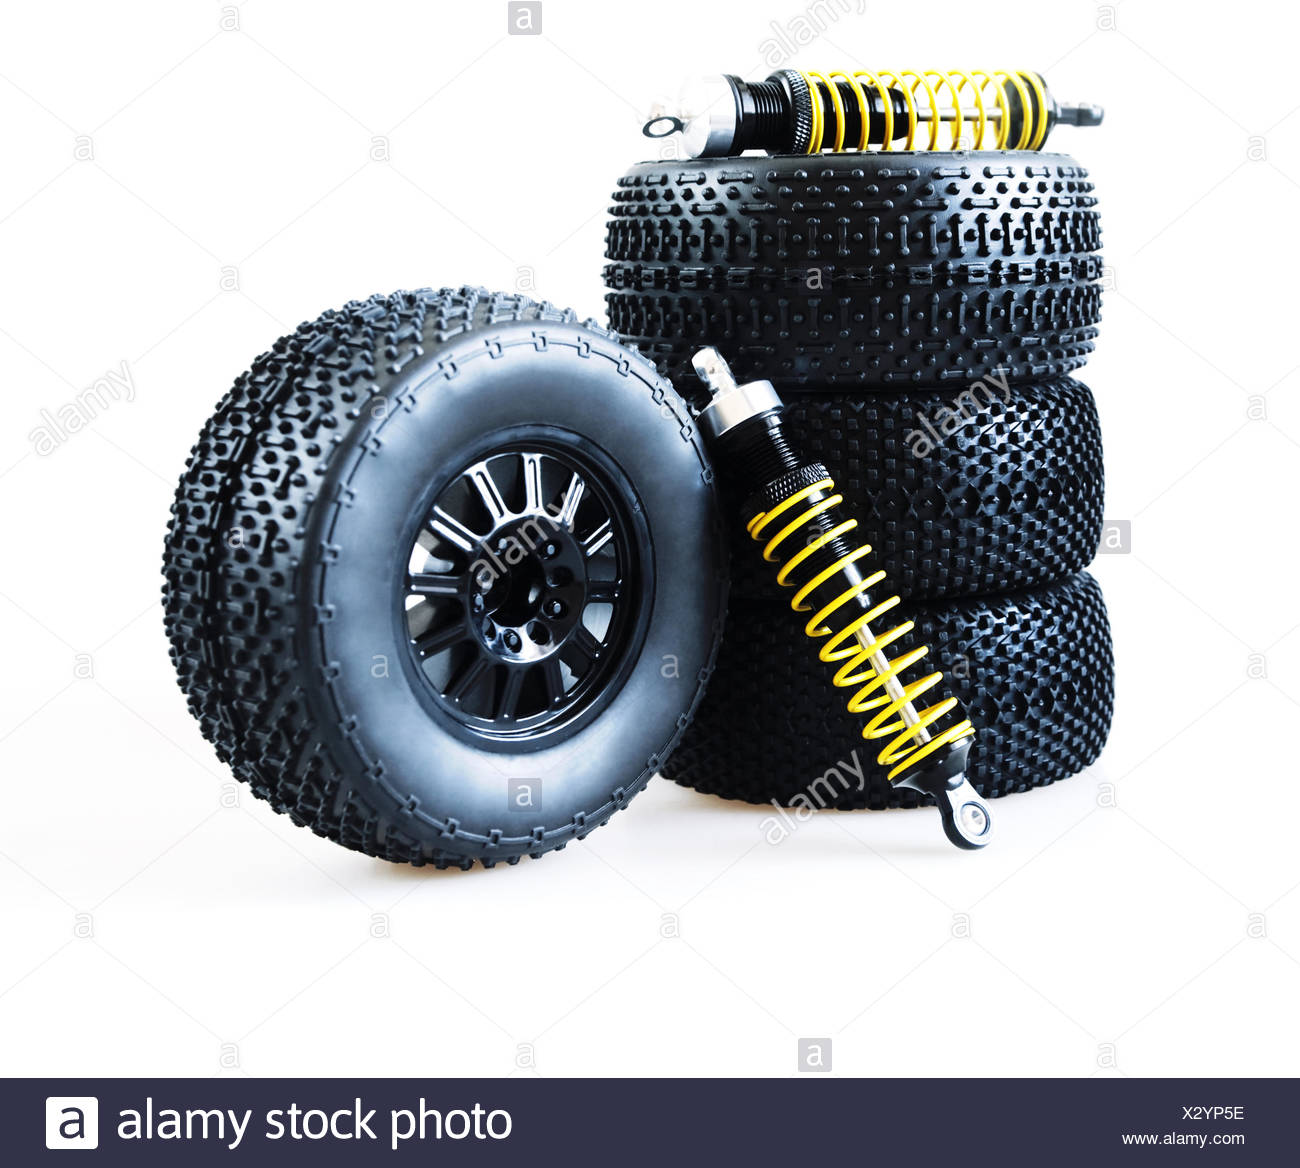 wheels and shock absorbers - Stock Image